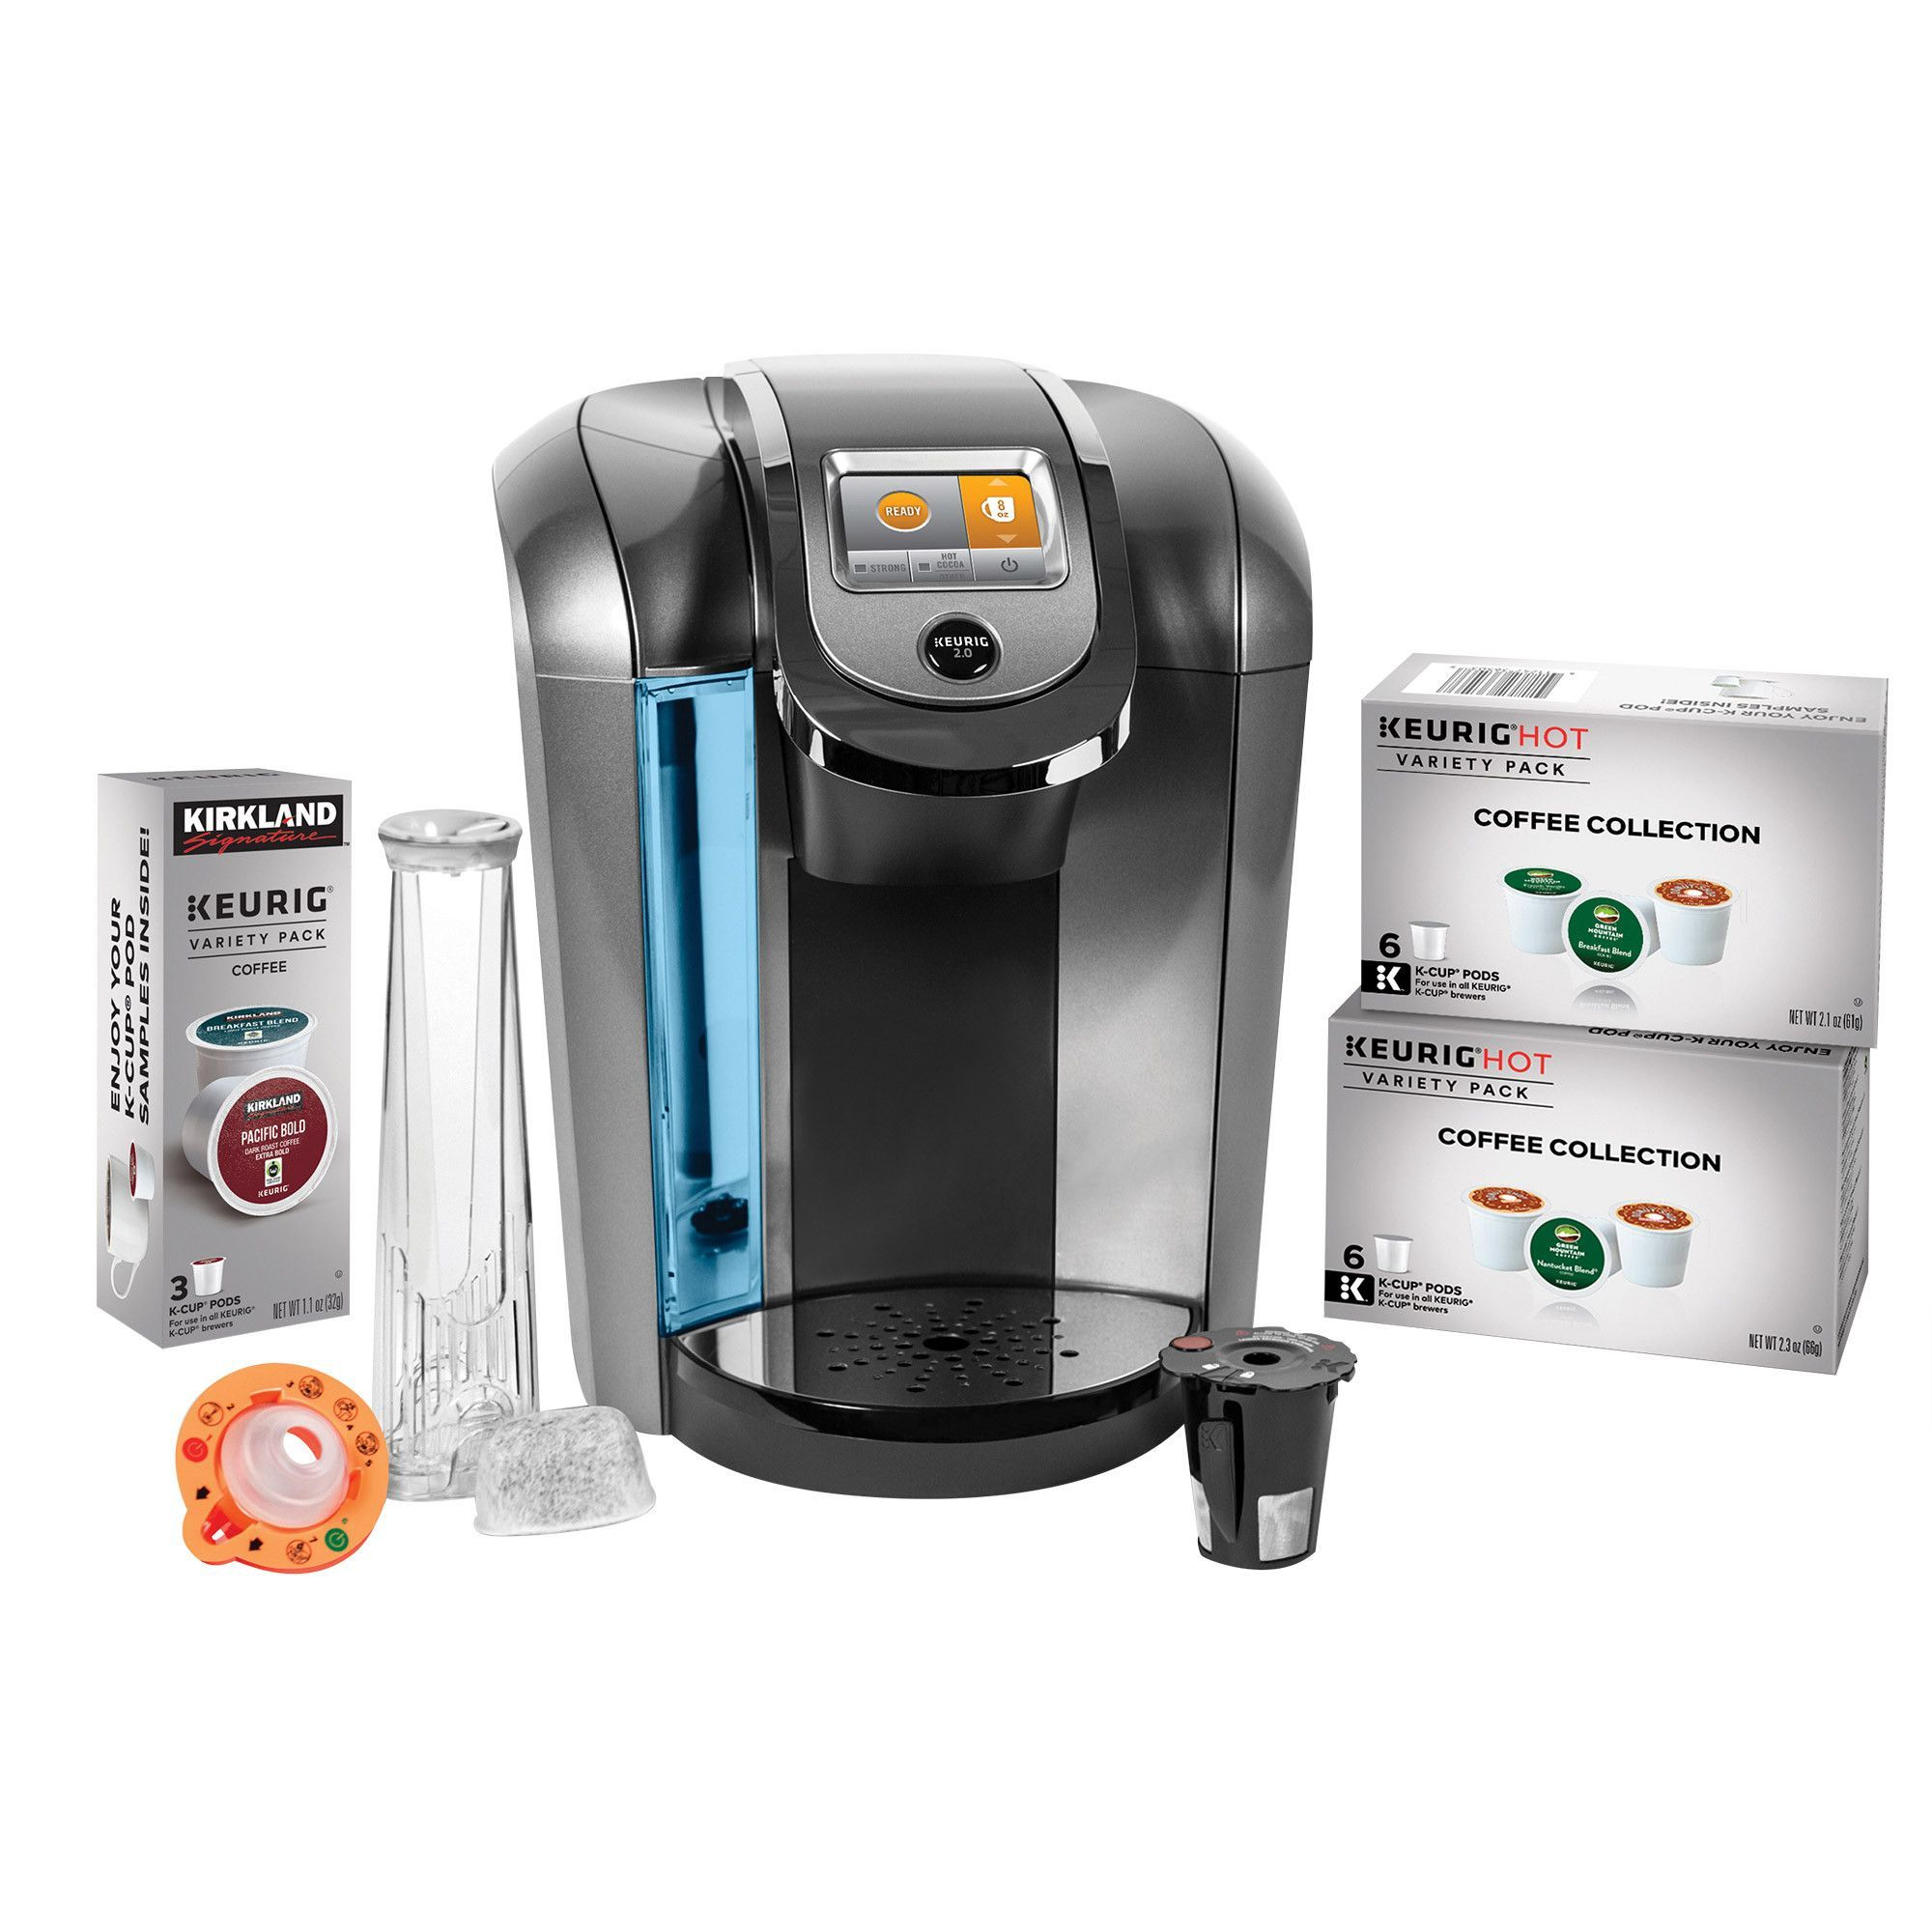 Keurig K525C Single Serve Coffee Maker 15 K-Cup Pods and My K-Cup 2.0 Reusable Coffee Filter ...